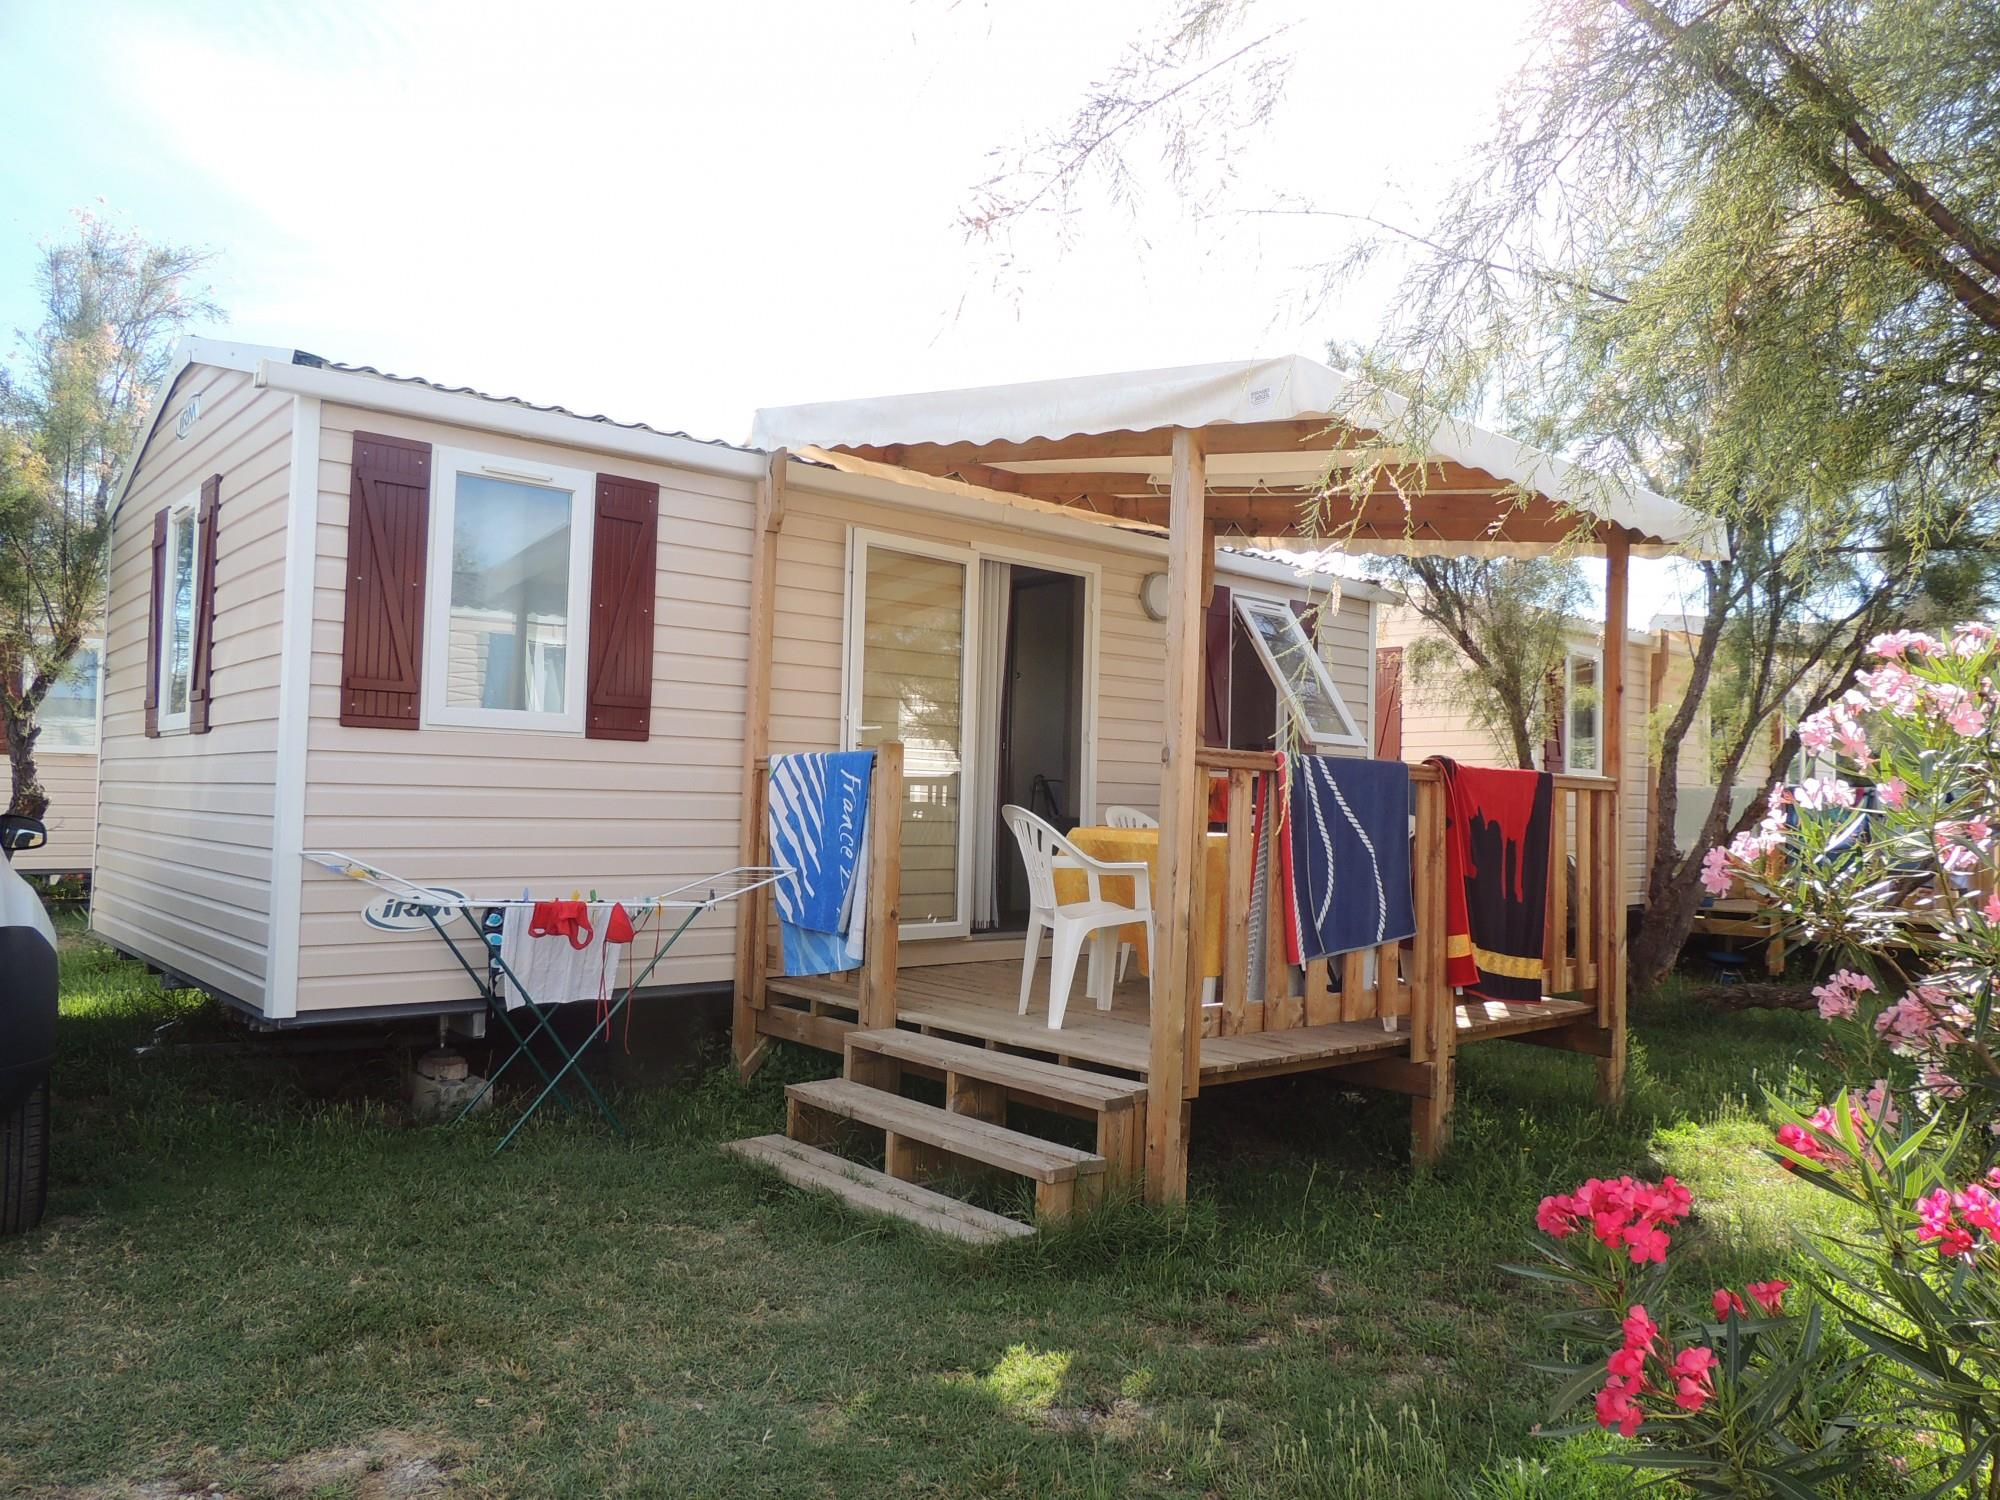 Mobile Home FAMILY 2 bedrooms 25.2m² + air-conditioning + TV + WIFI + Safe